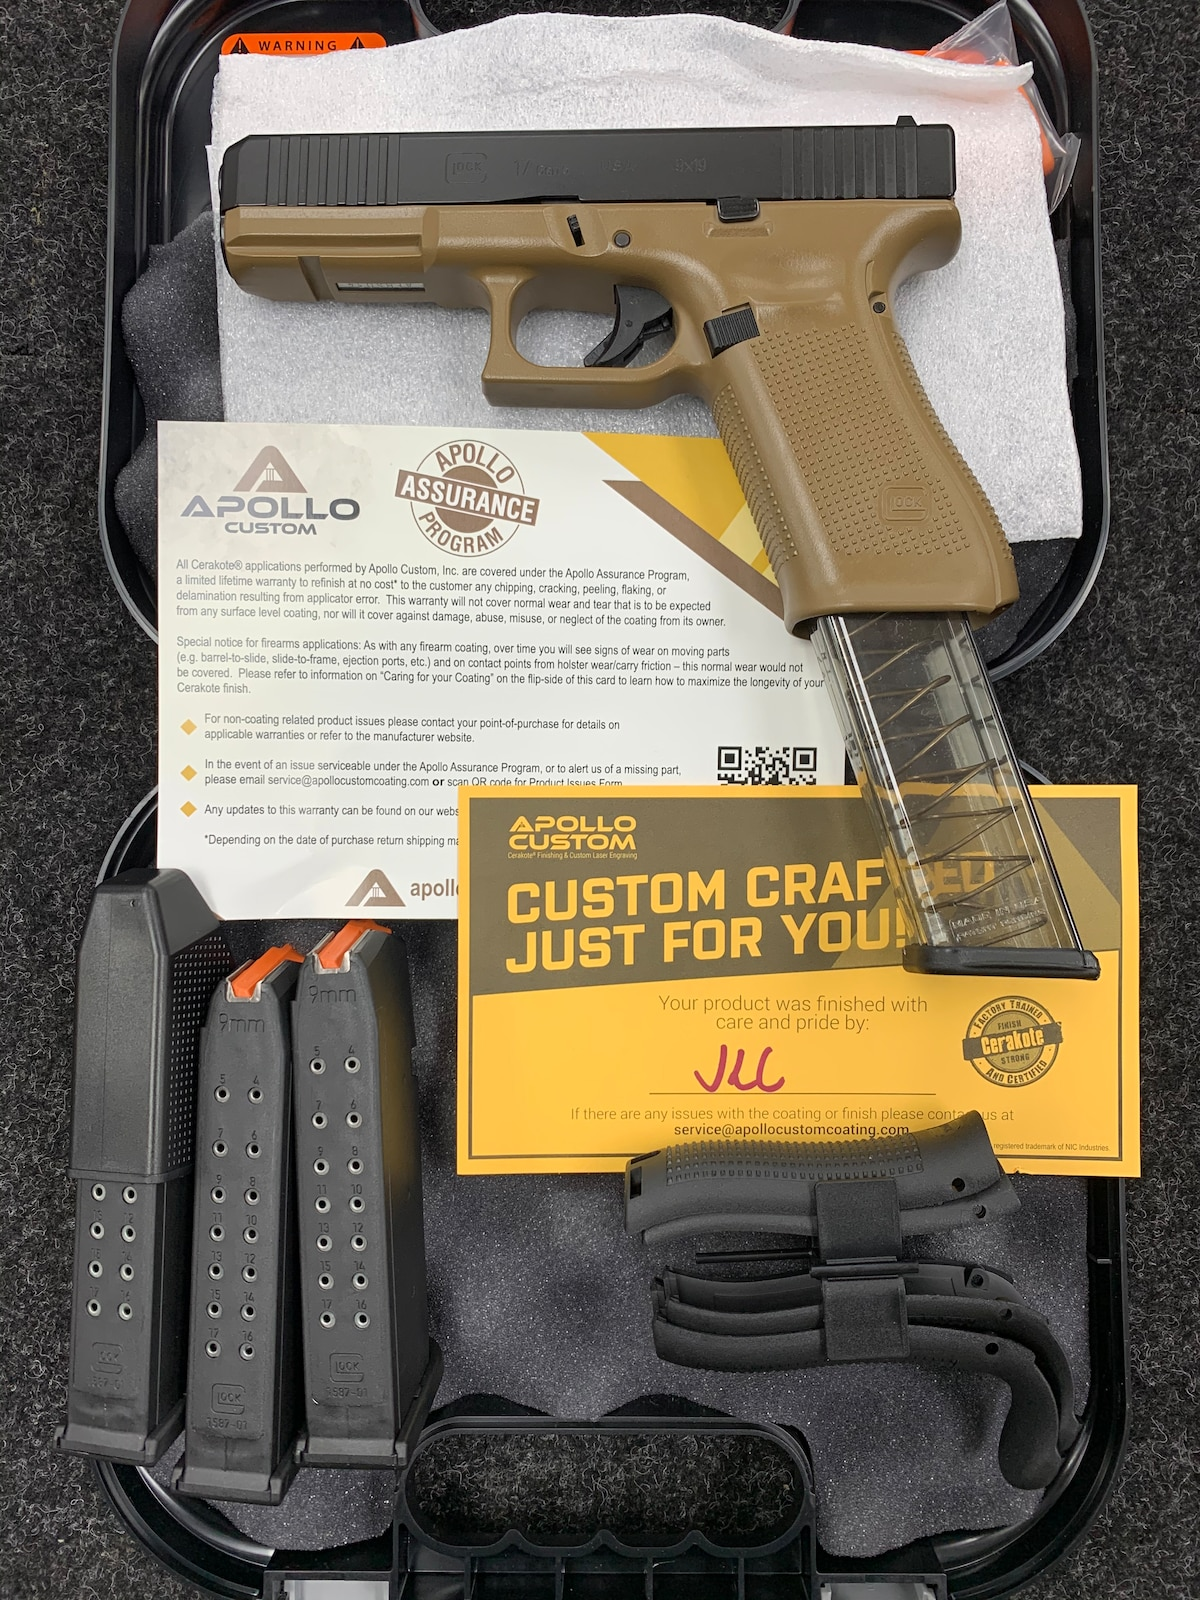 GLOCK 17 G17 GEN 5 APOLLO CUSTOM